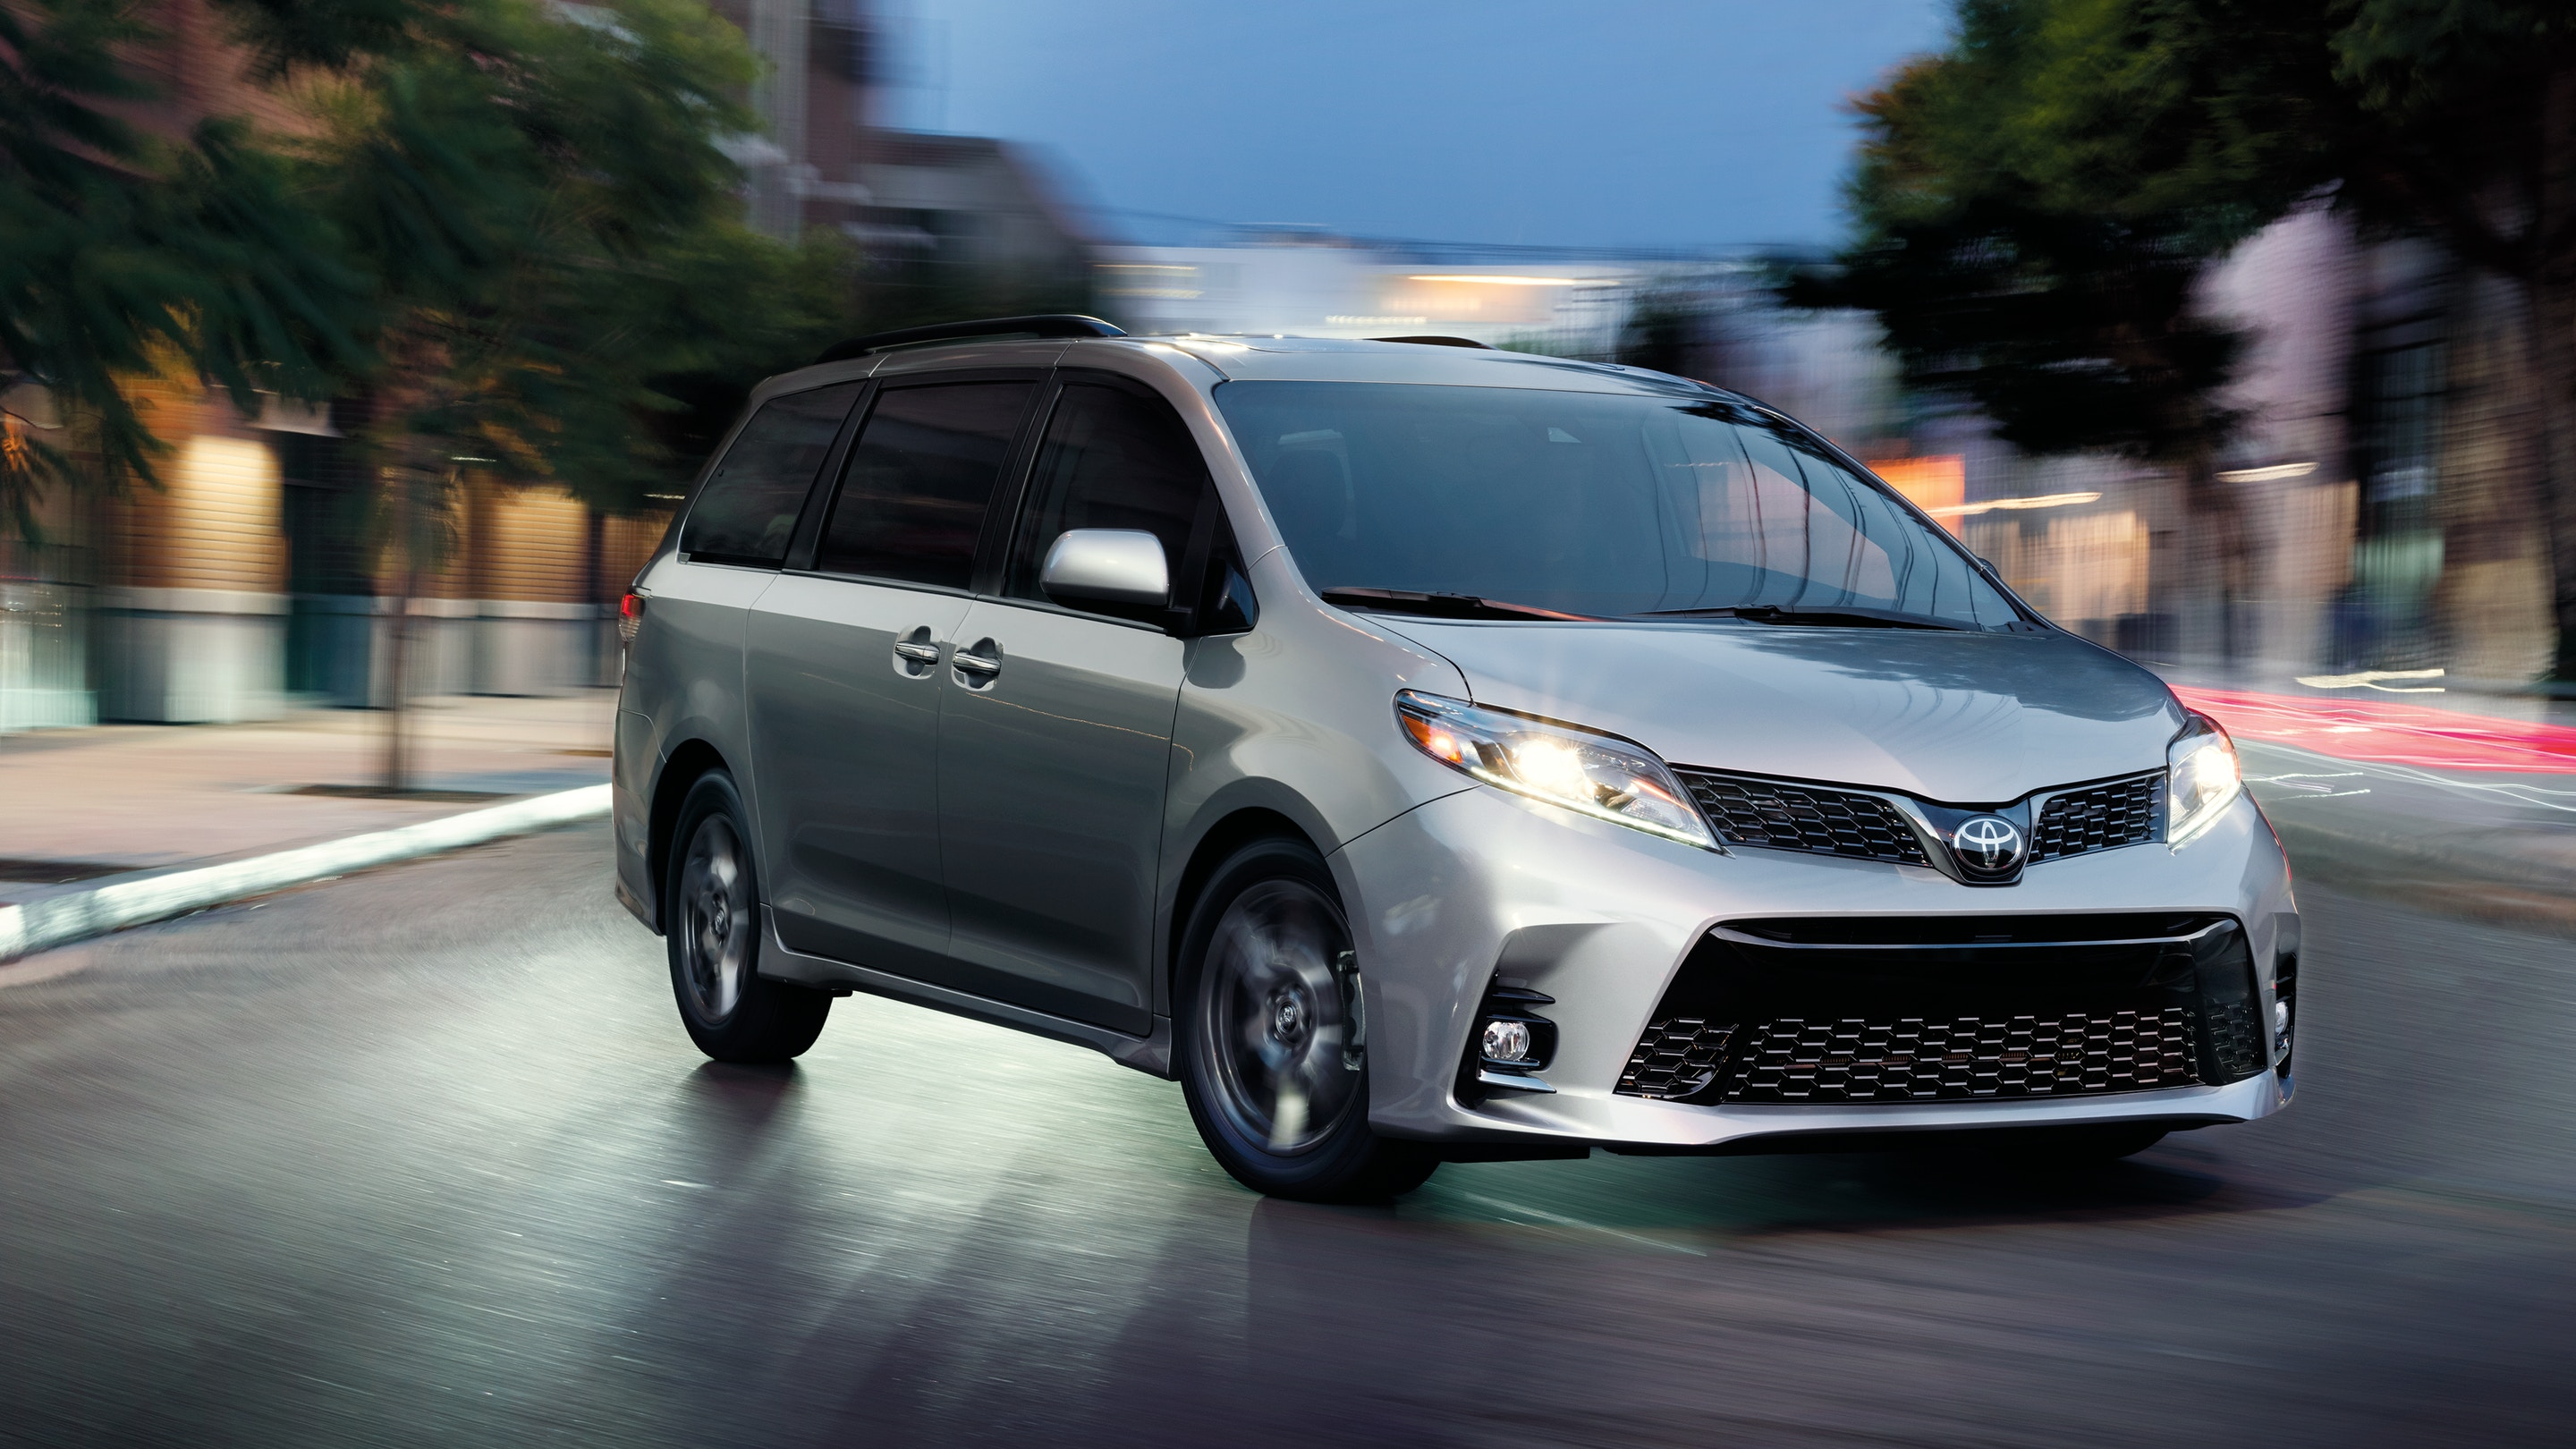 2019 Toyota Sienna for Sale near Beloit, WI